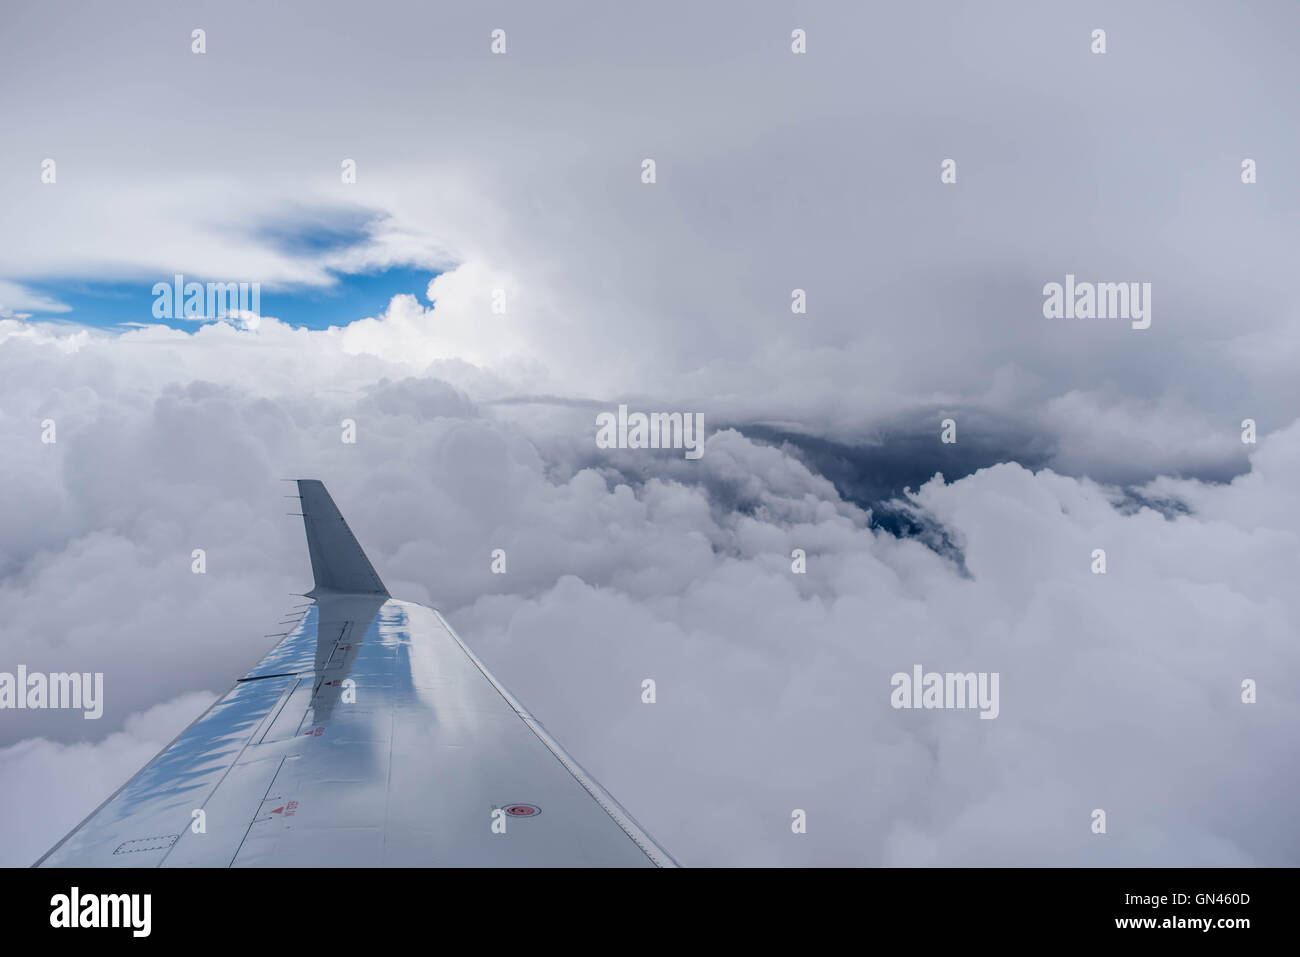 Airplane Wing Tip against a Cloudy Sky, with a hint of blue - Stock Image